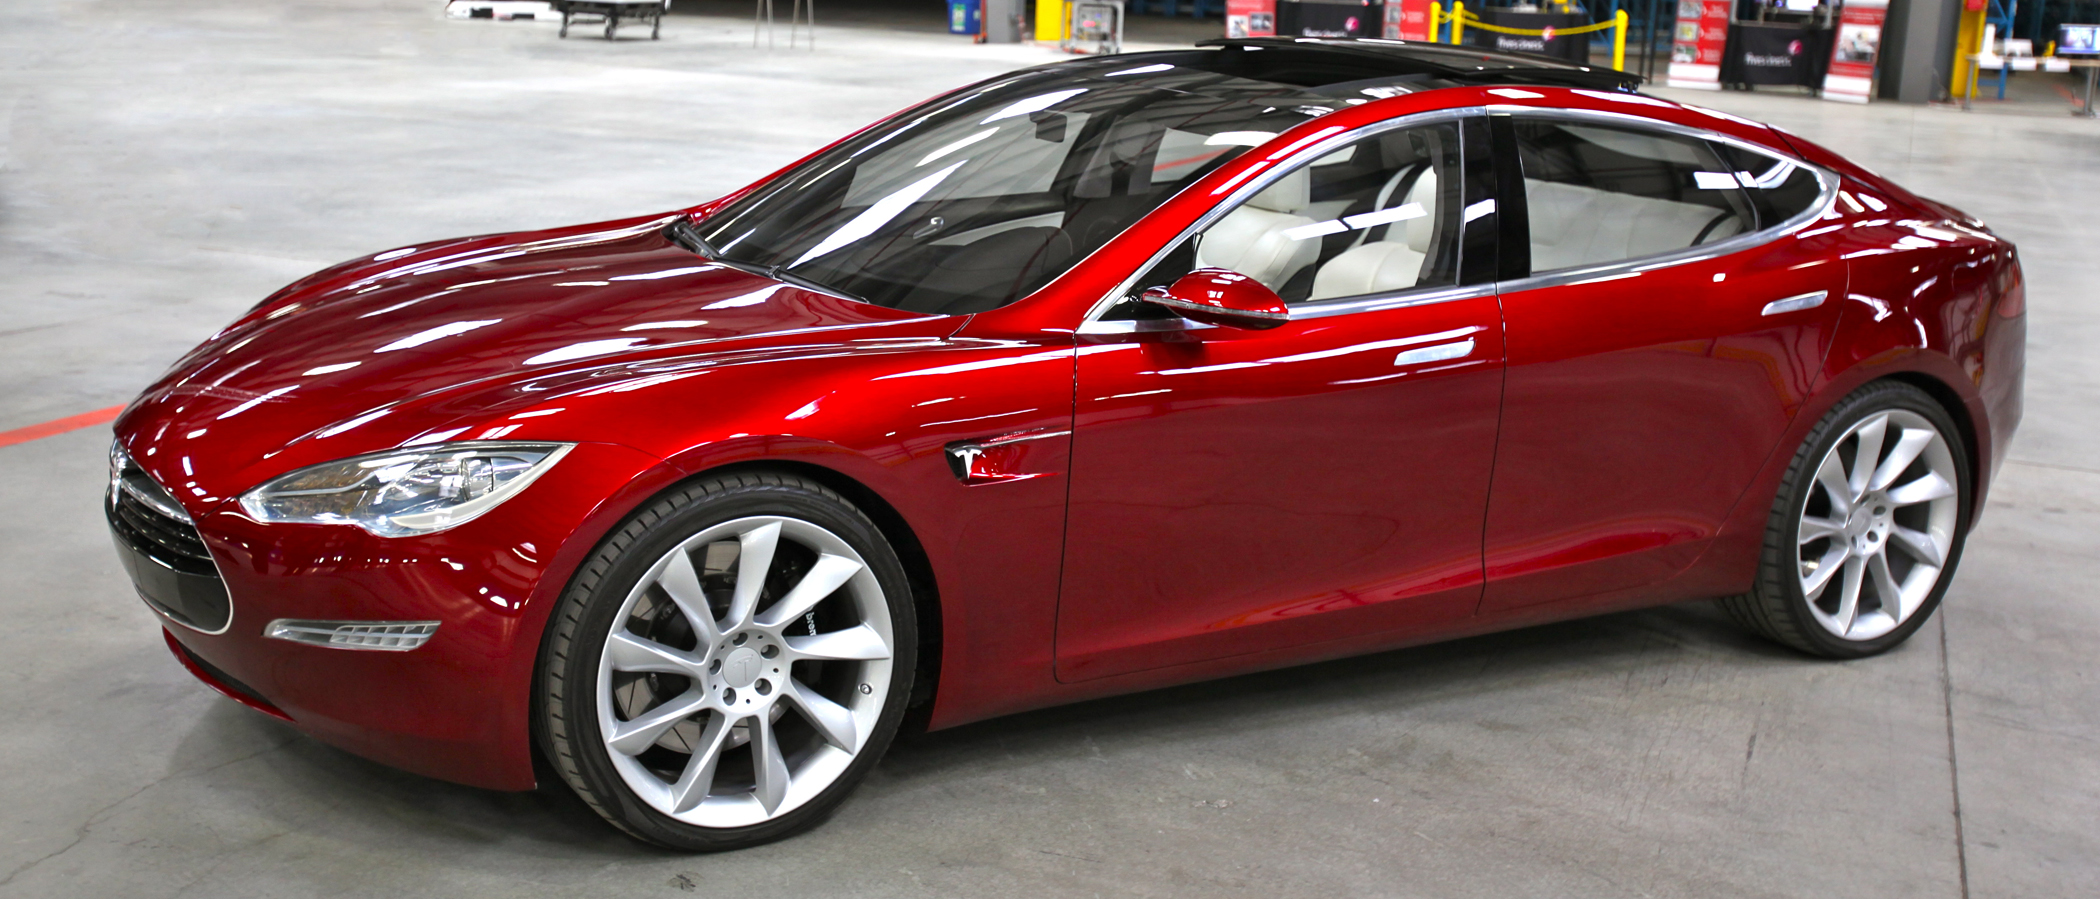 Is Tesla Missing Out on the Auto Industry Boom?